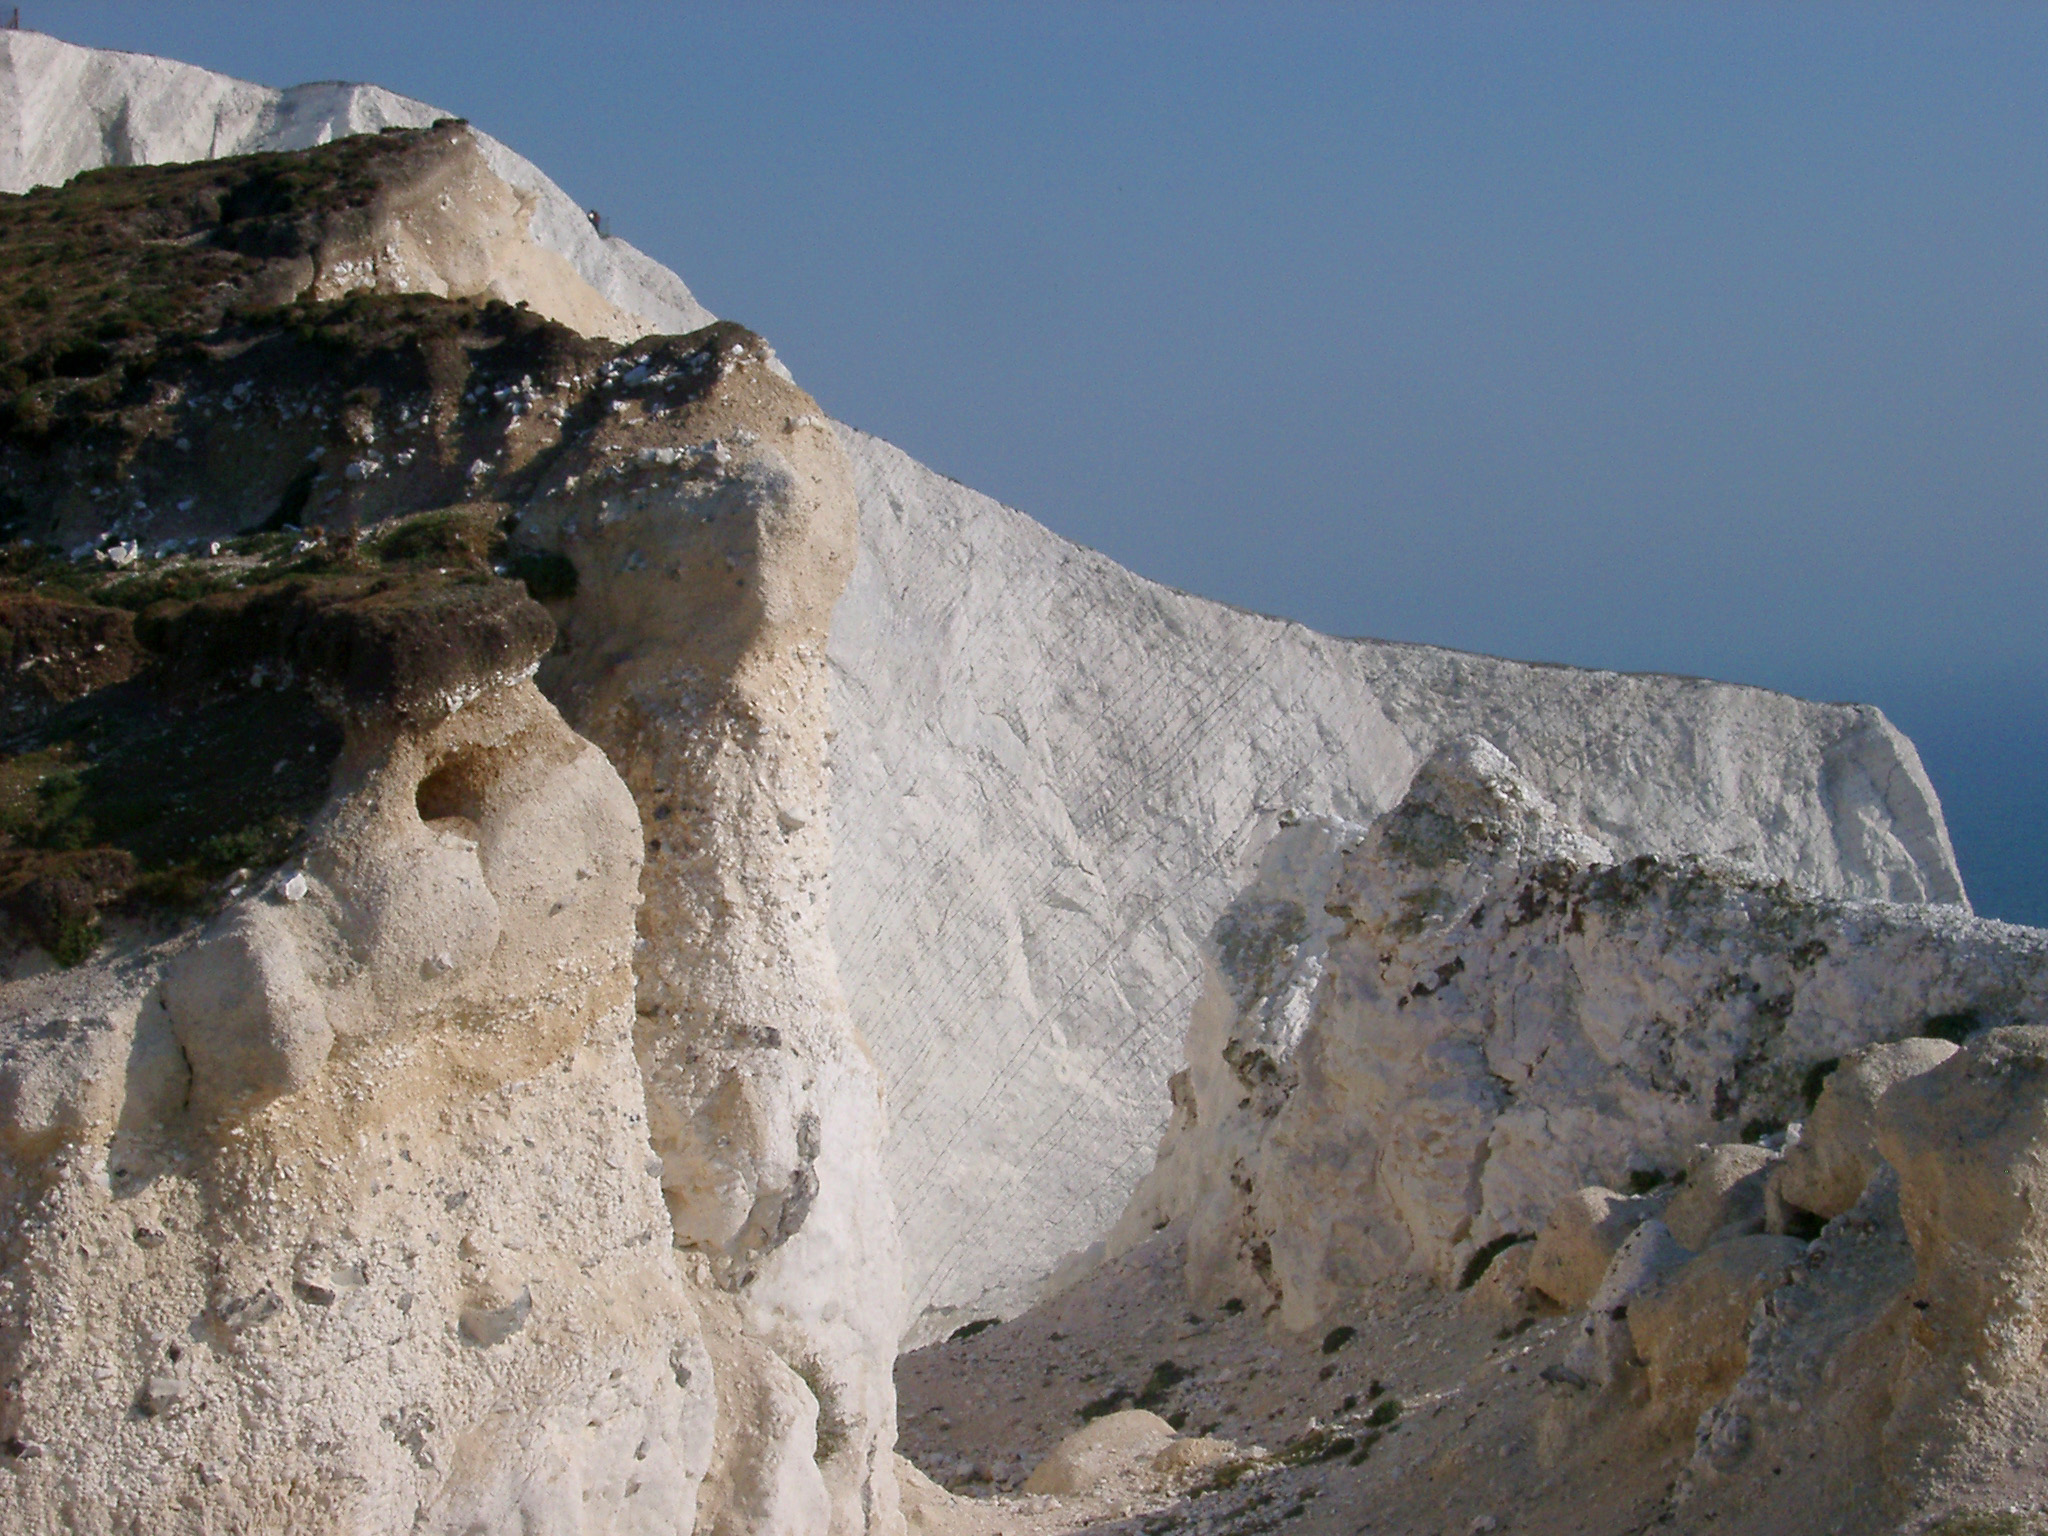 Close up Famous Textured Chalk Cliffs at Whitecliff Bay on the Isle of Wight. Captured with Blue Gray Sky Background.